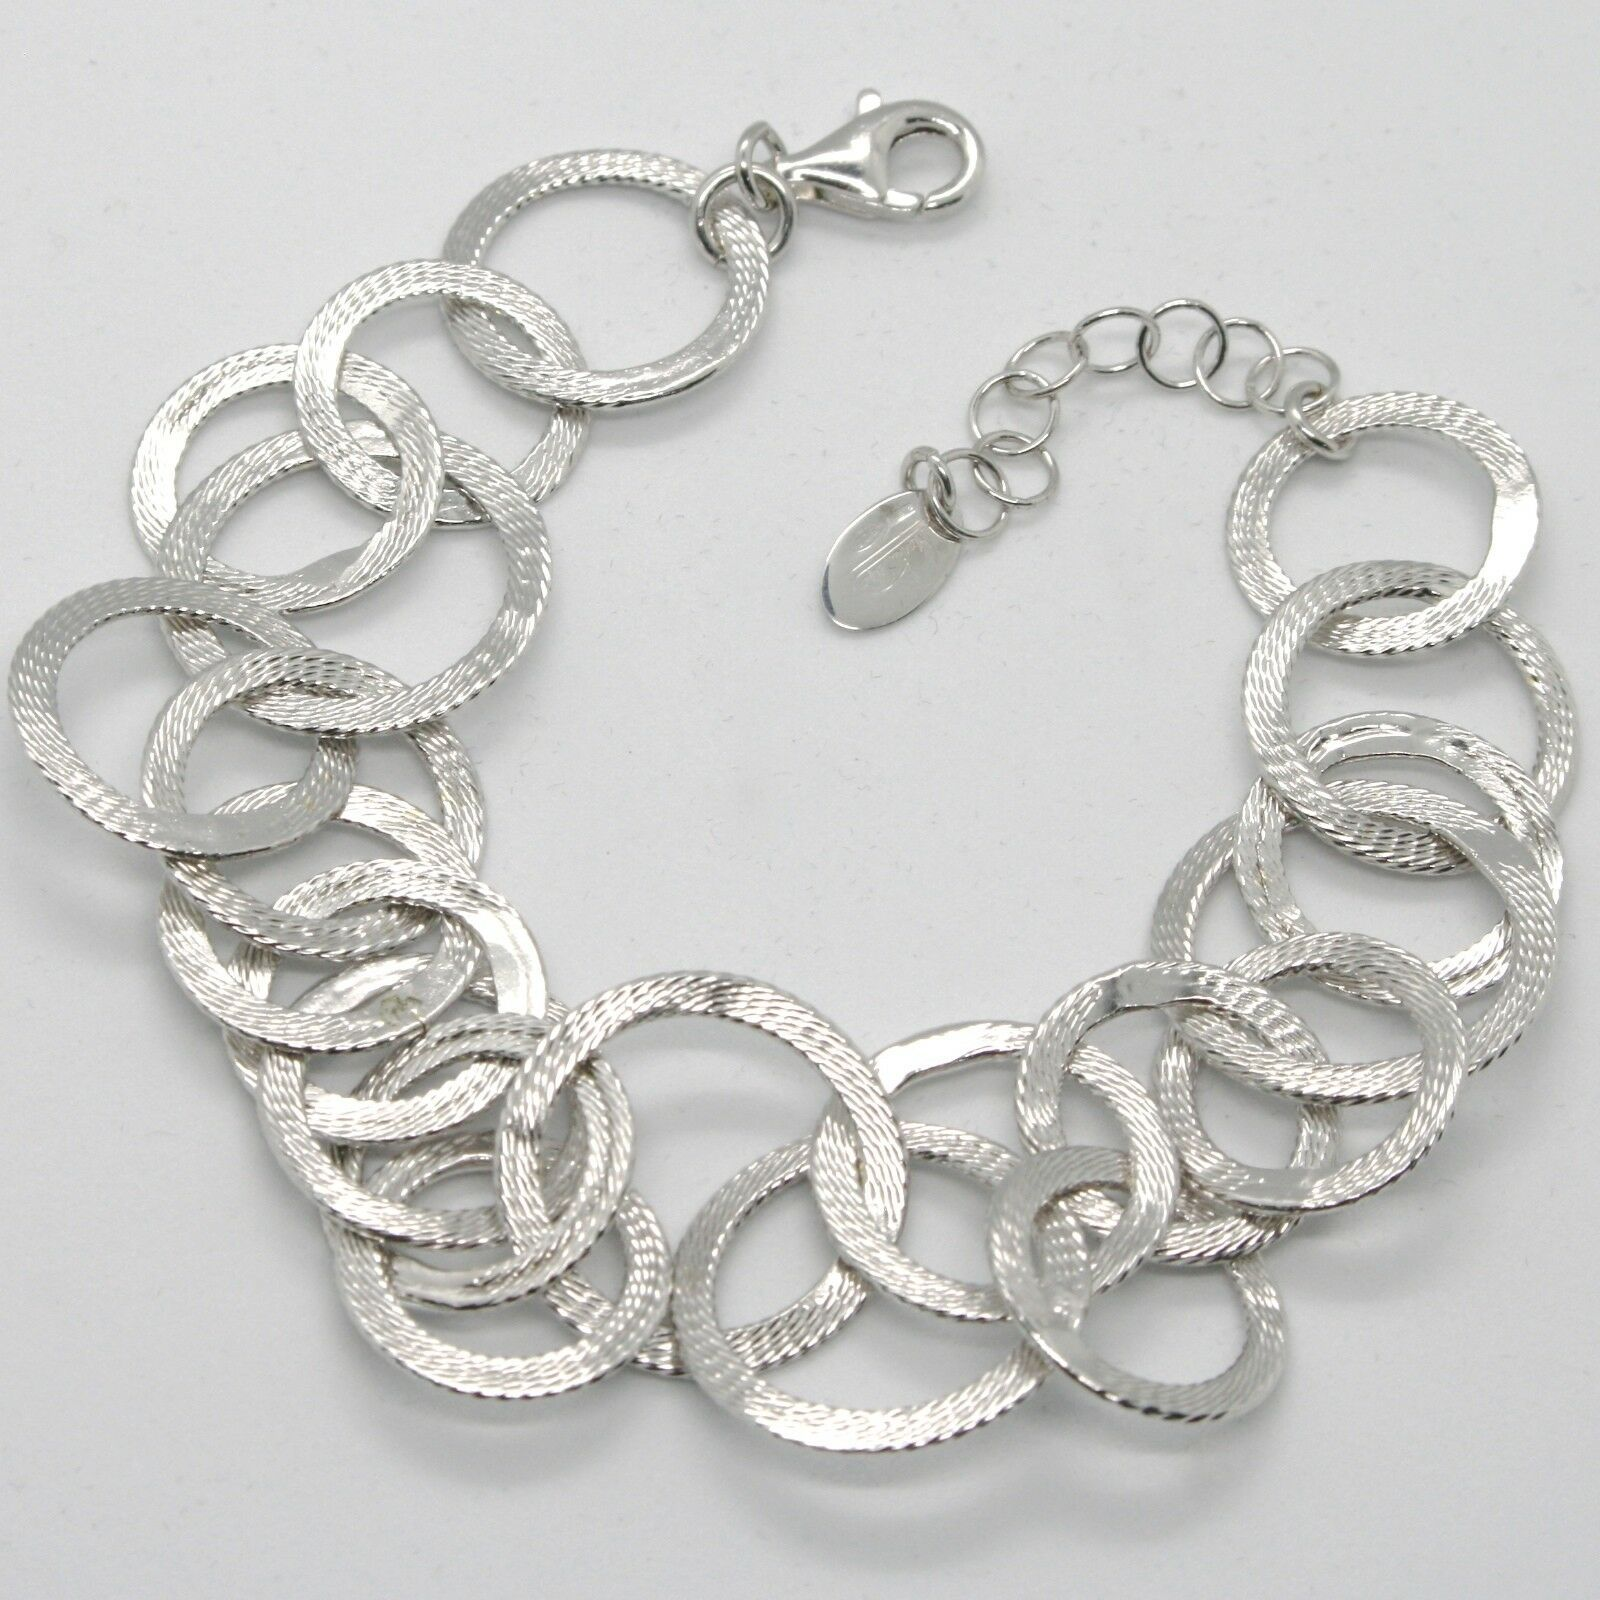 Primary image for Silber Armband 925 mit Kreise Mattiert By Maria Ielpo , Made in Italien